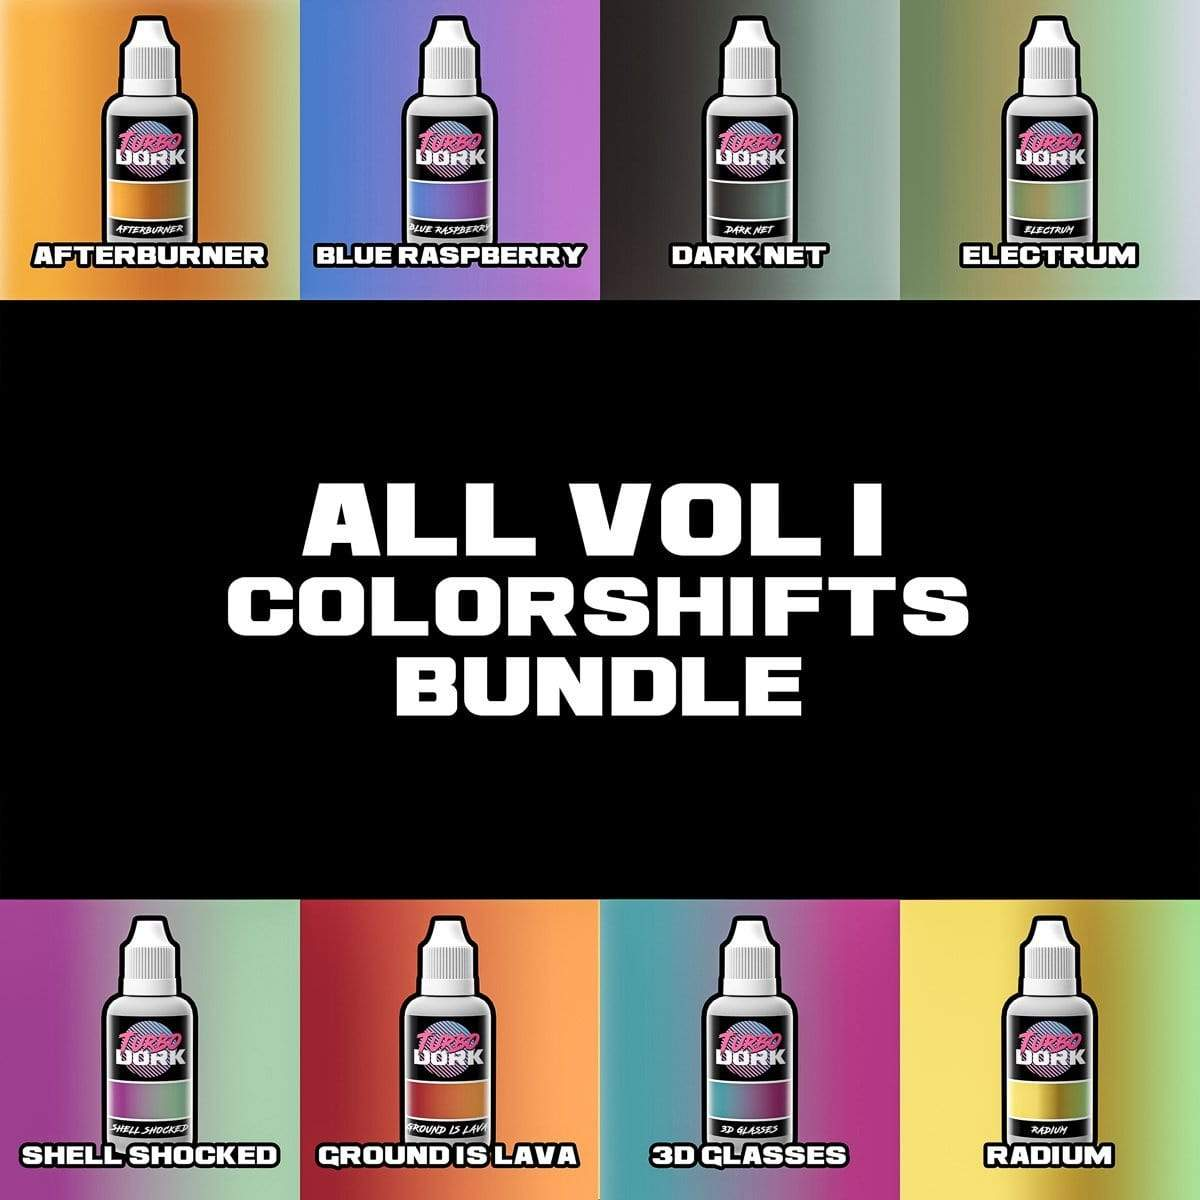 Turbo Dork Colorshift Volume 1 Colorshift Acrylic Paints Bundle